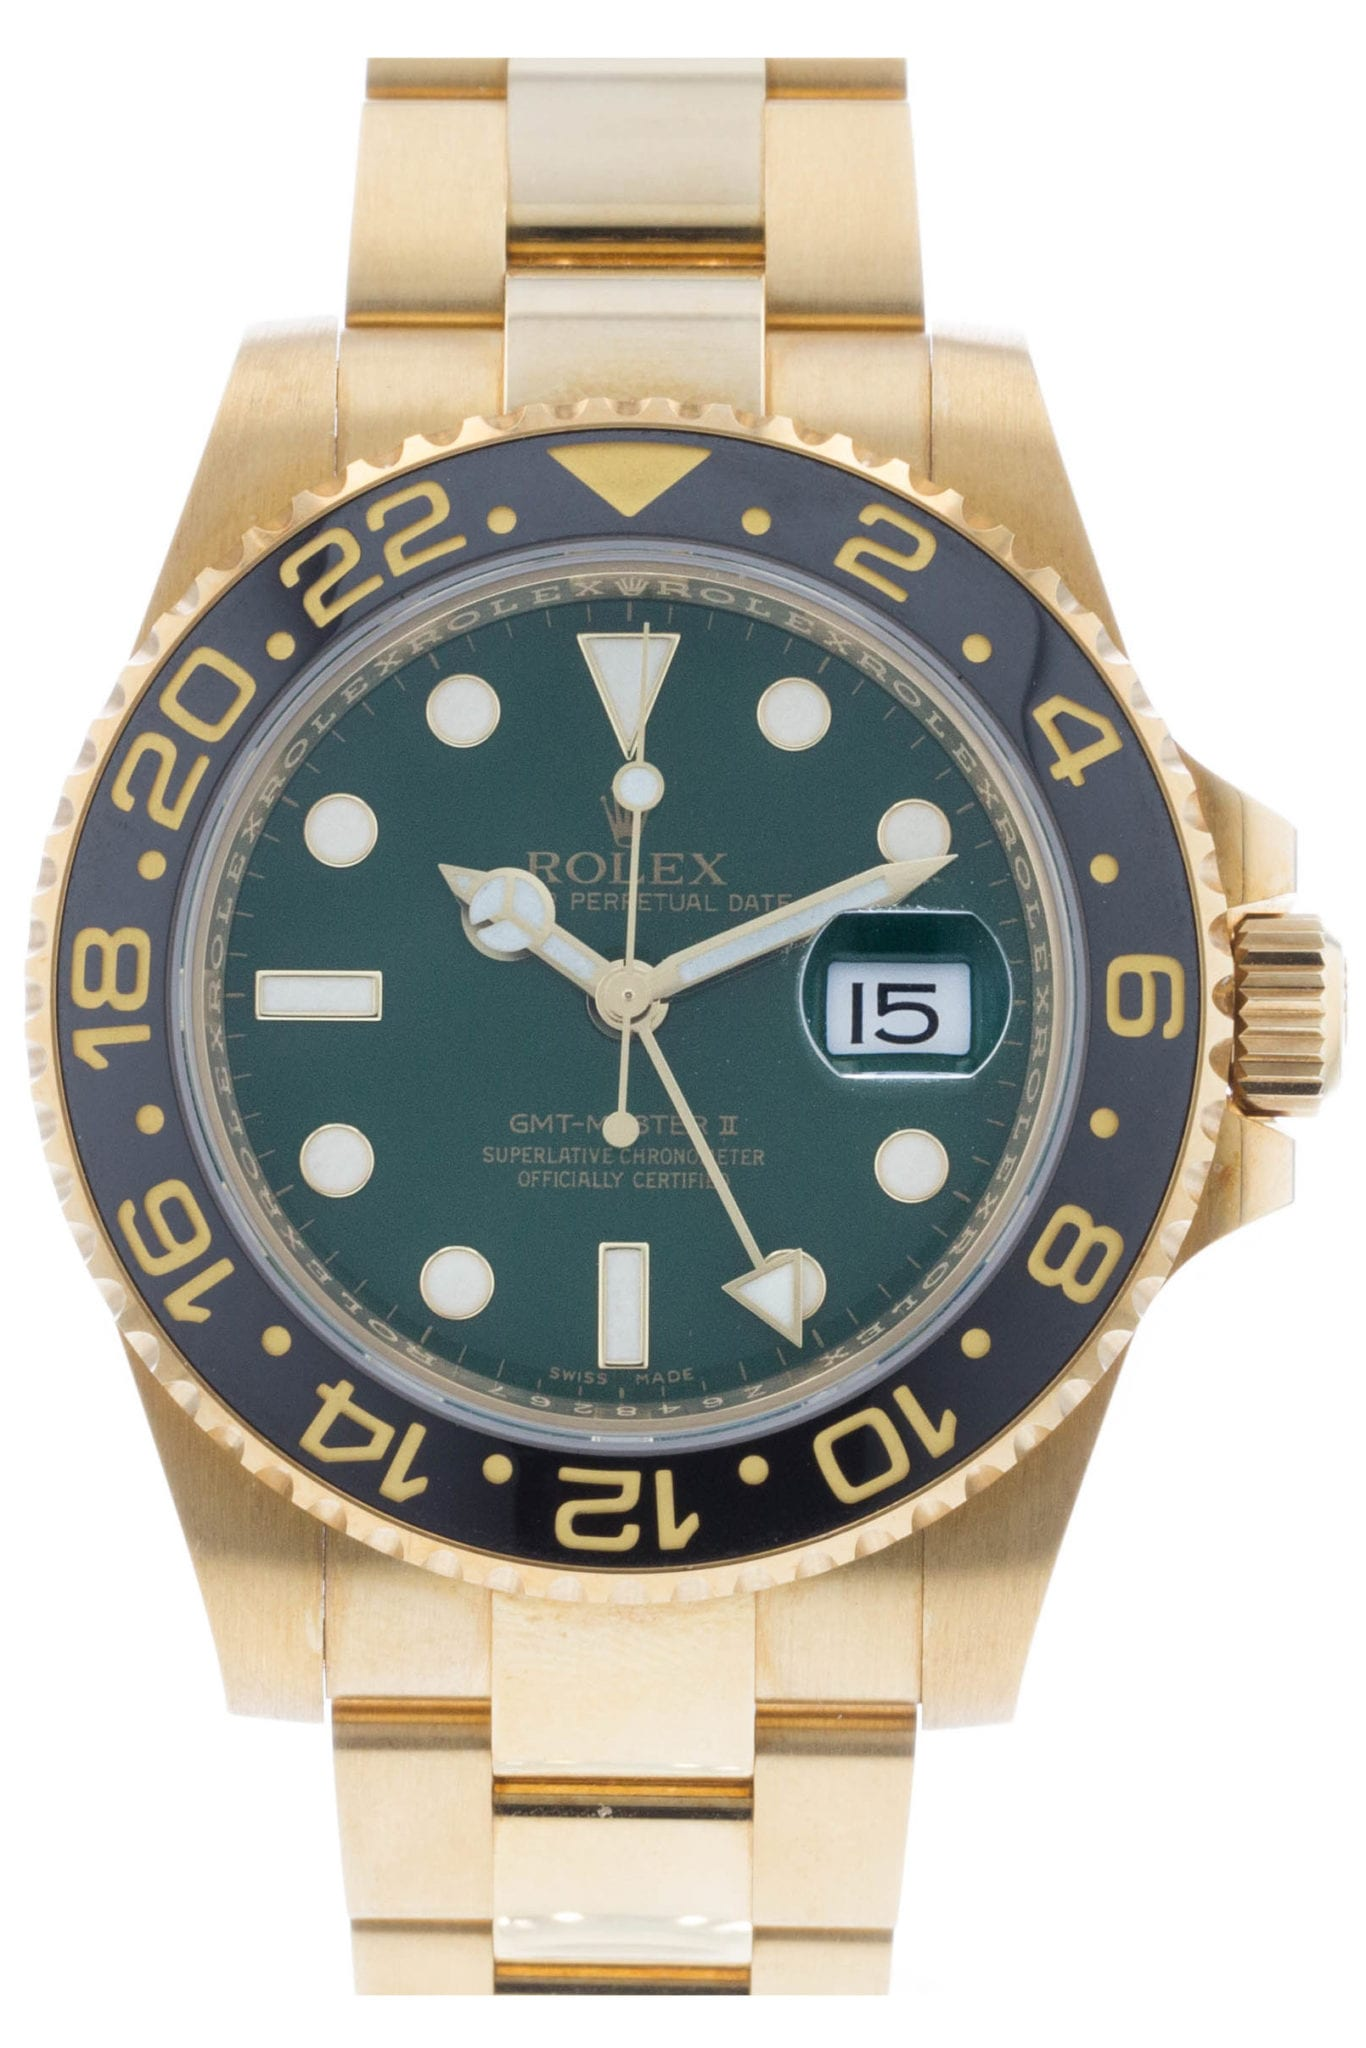 Rolex Watches For Sale Used Rolex Uk Pre Owned Rolex